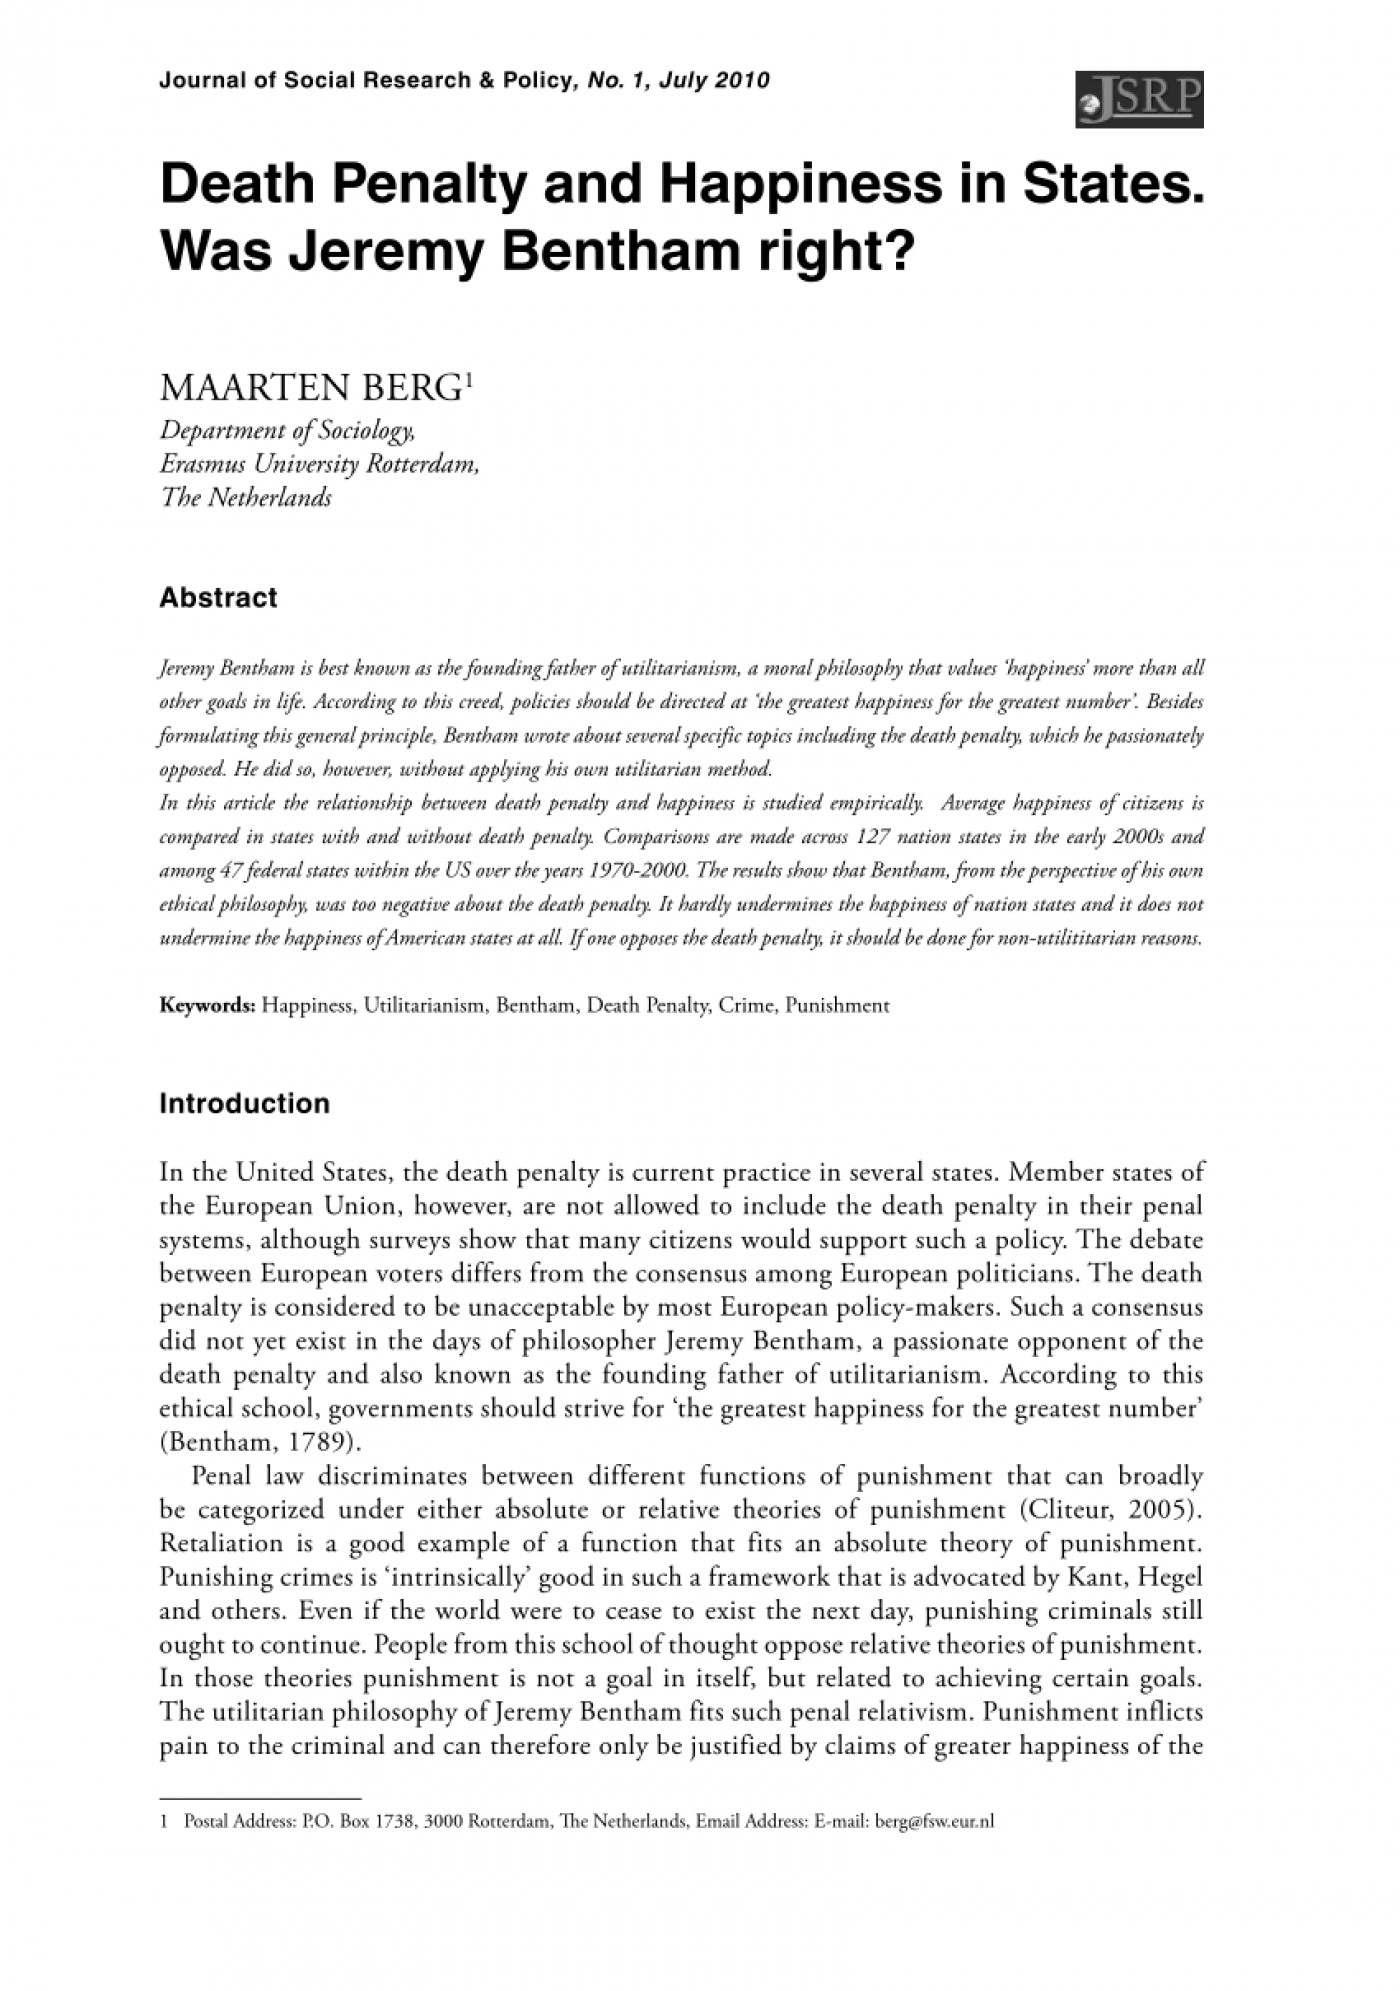 001 Death Penalty Research Paper Abstract Remarkable 1400